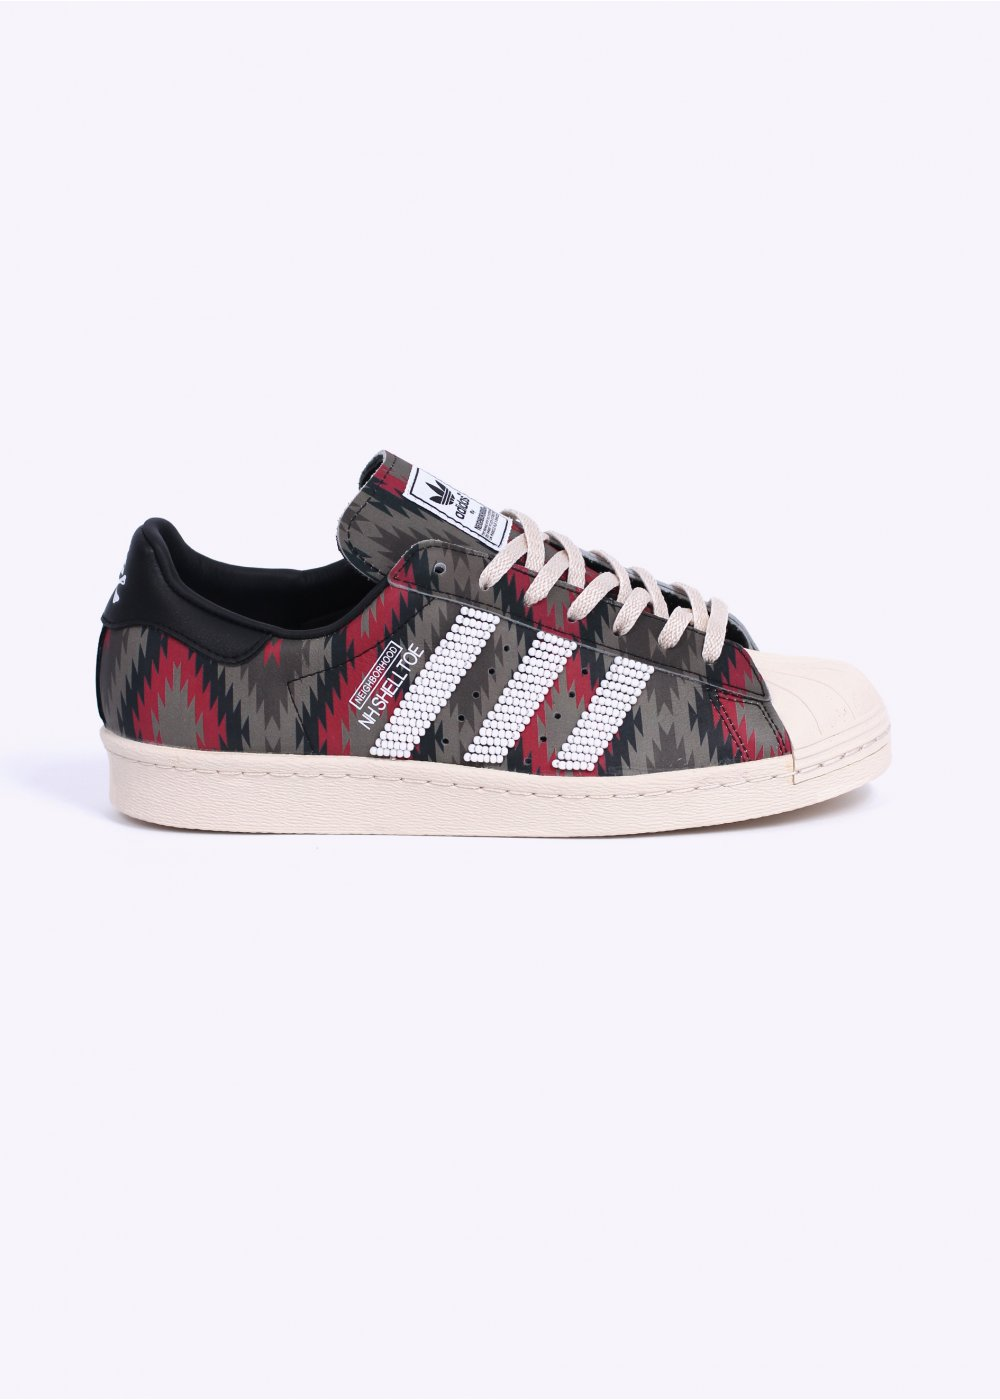 hot sale online 121e0 ec9d9 adidas Originals by Neighborhood Shelltoe Trainers - Multi-Coloured